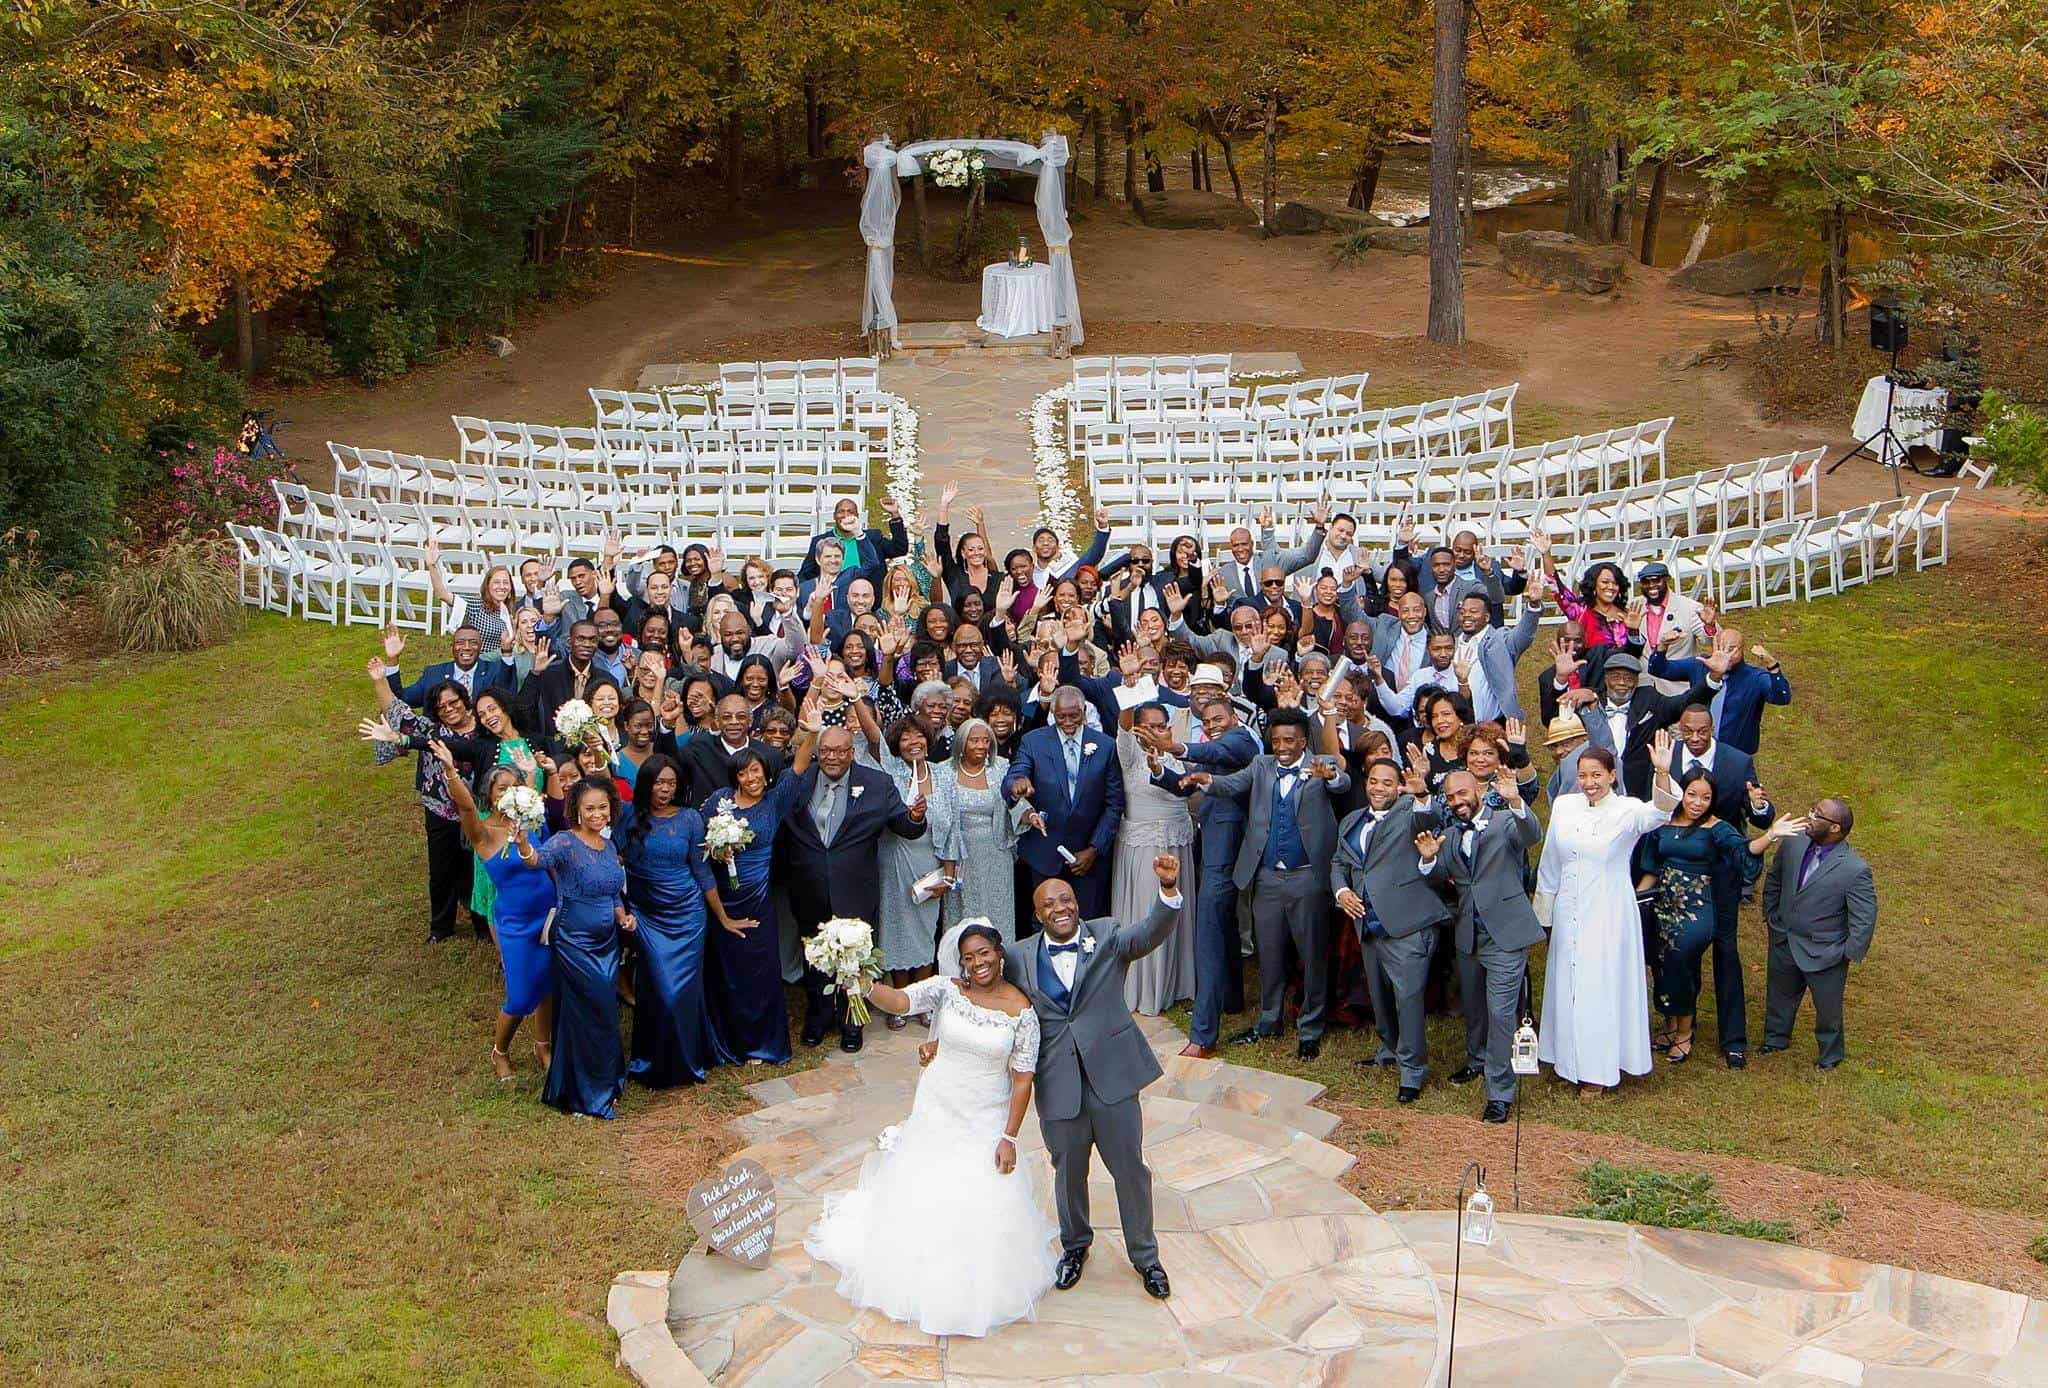 Aerial view of entire wedding party and guests cheering on bride and groom